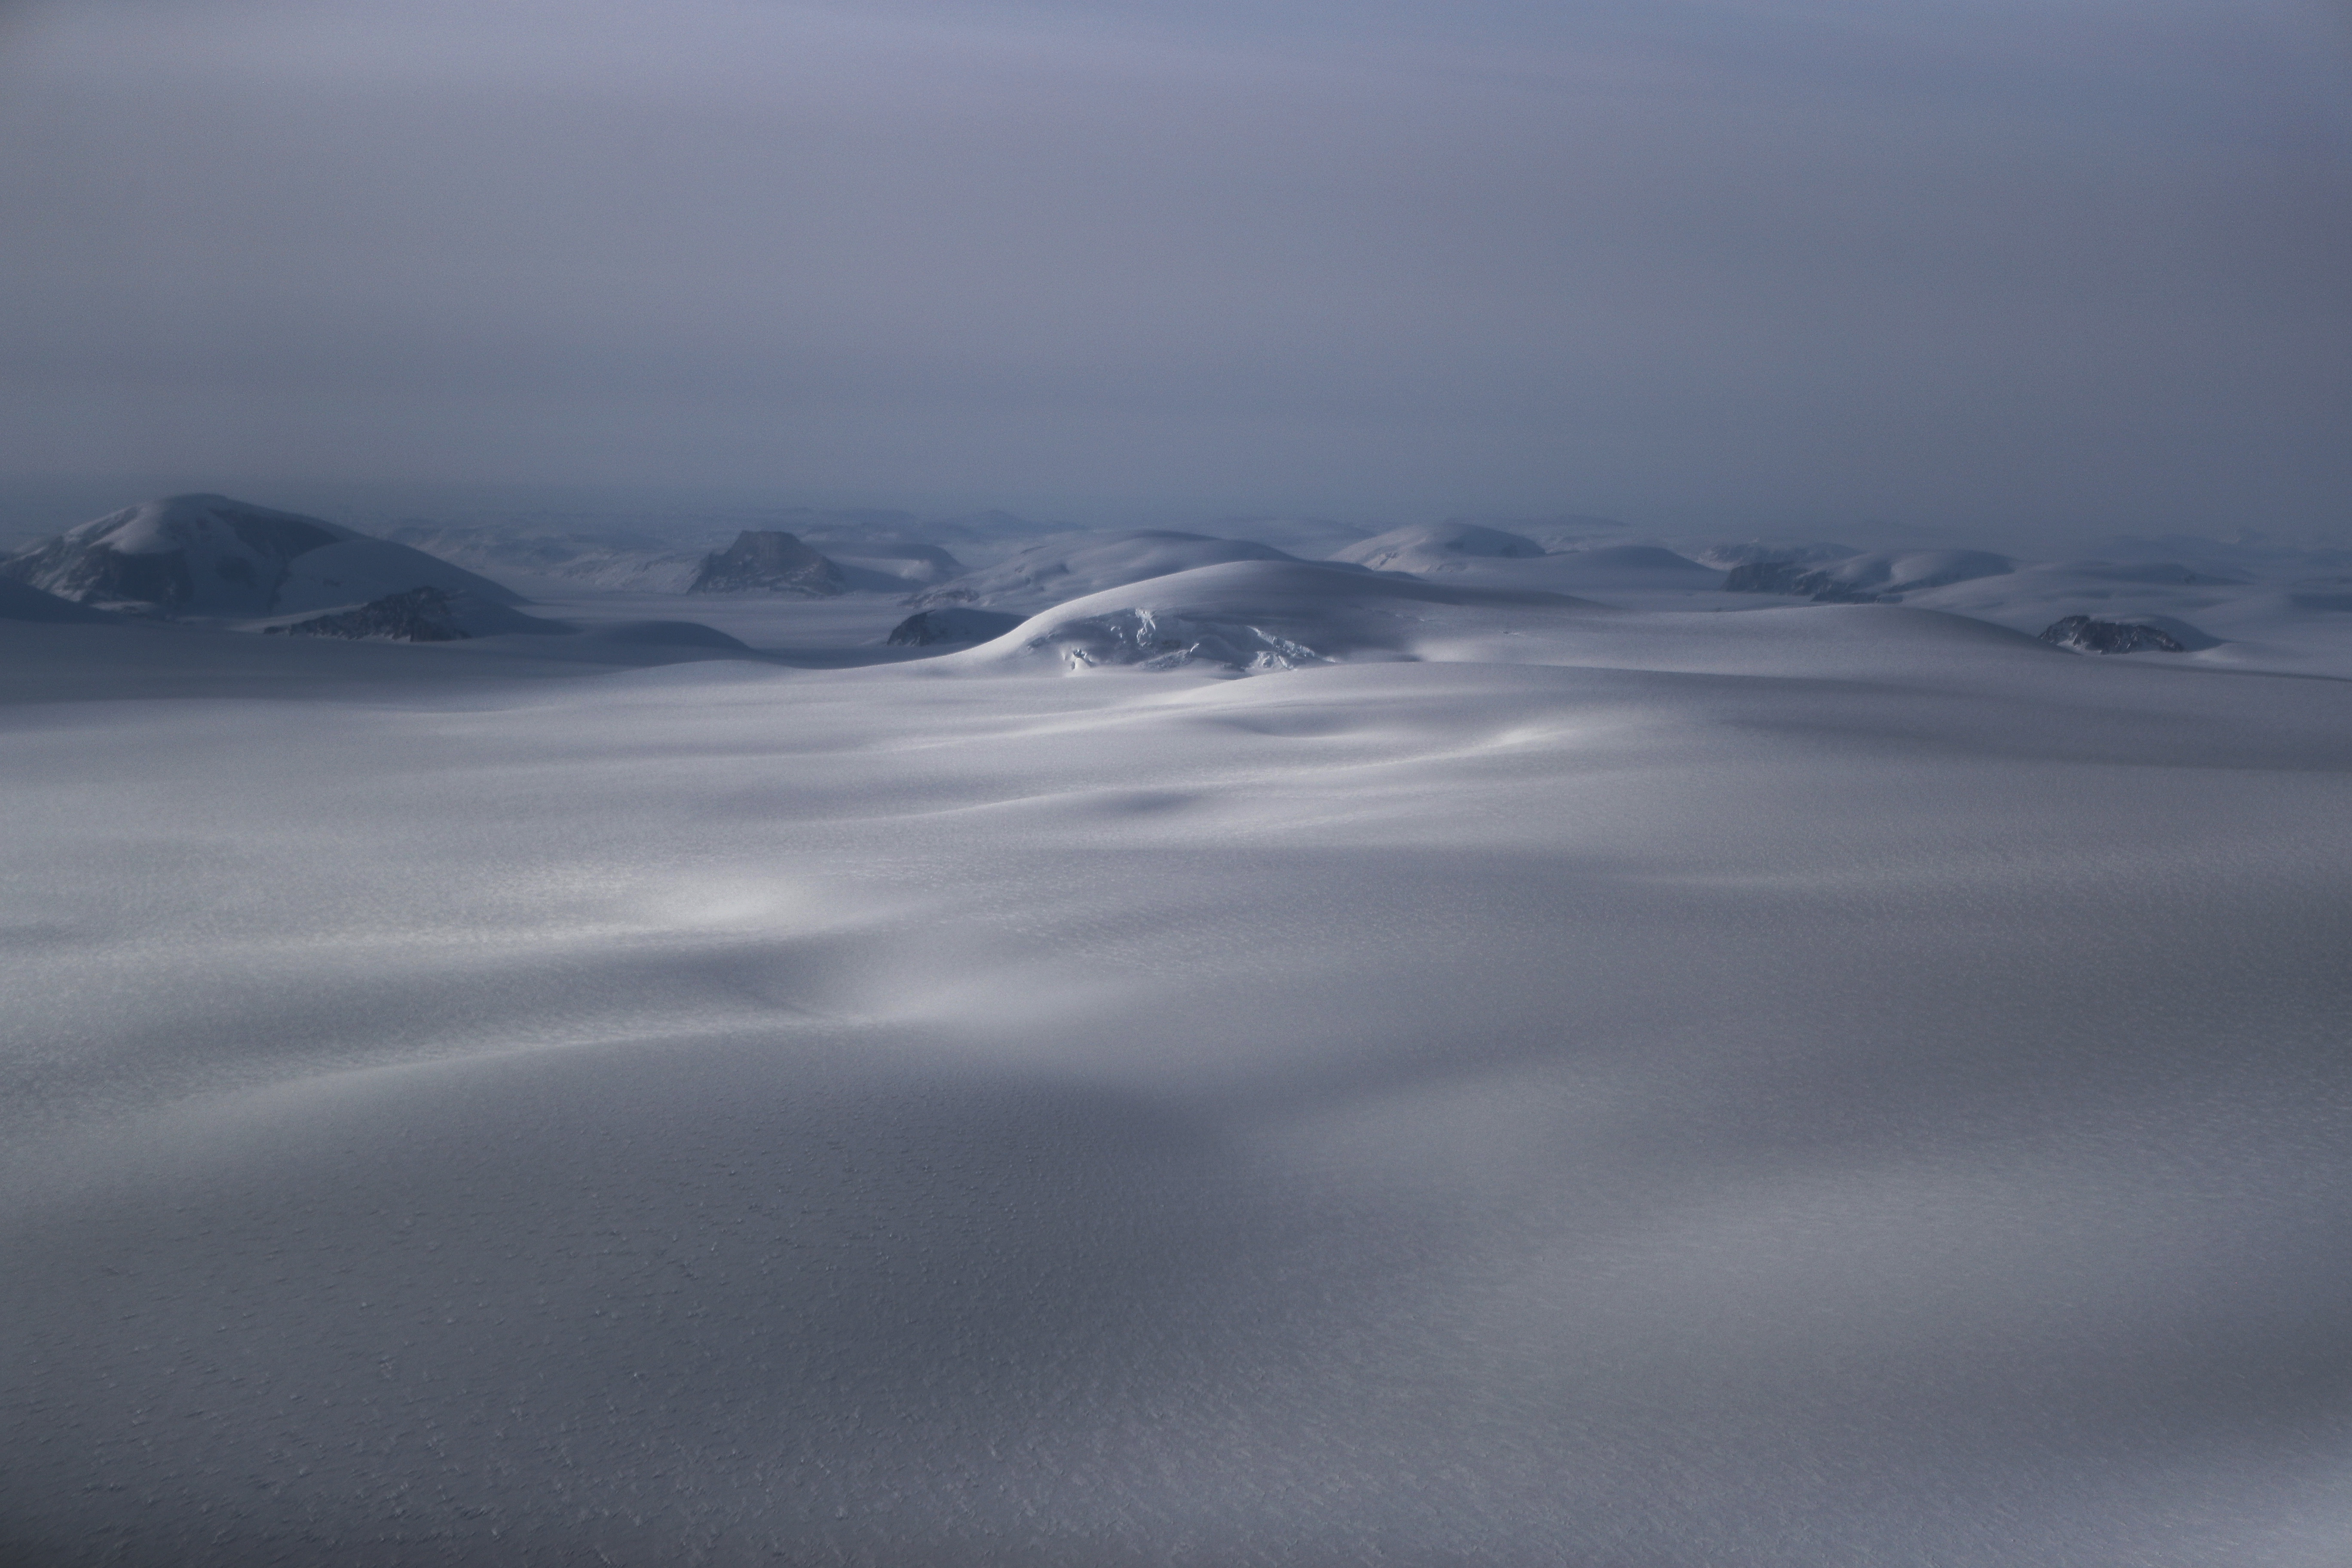 NASA is monitoring Arctic ice loss due to warming temperatures with research flights over Greenland and Canda. (Getty Images)